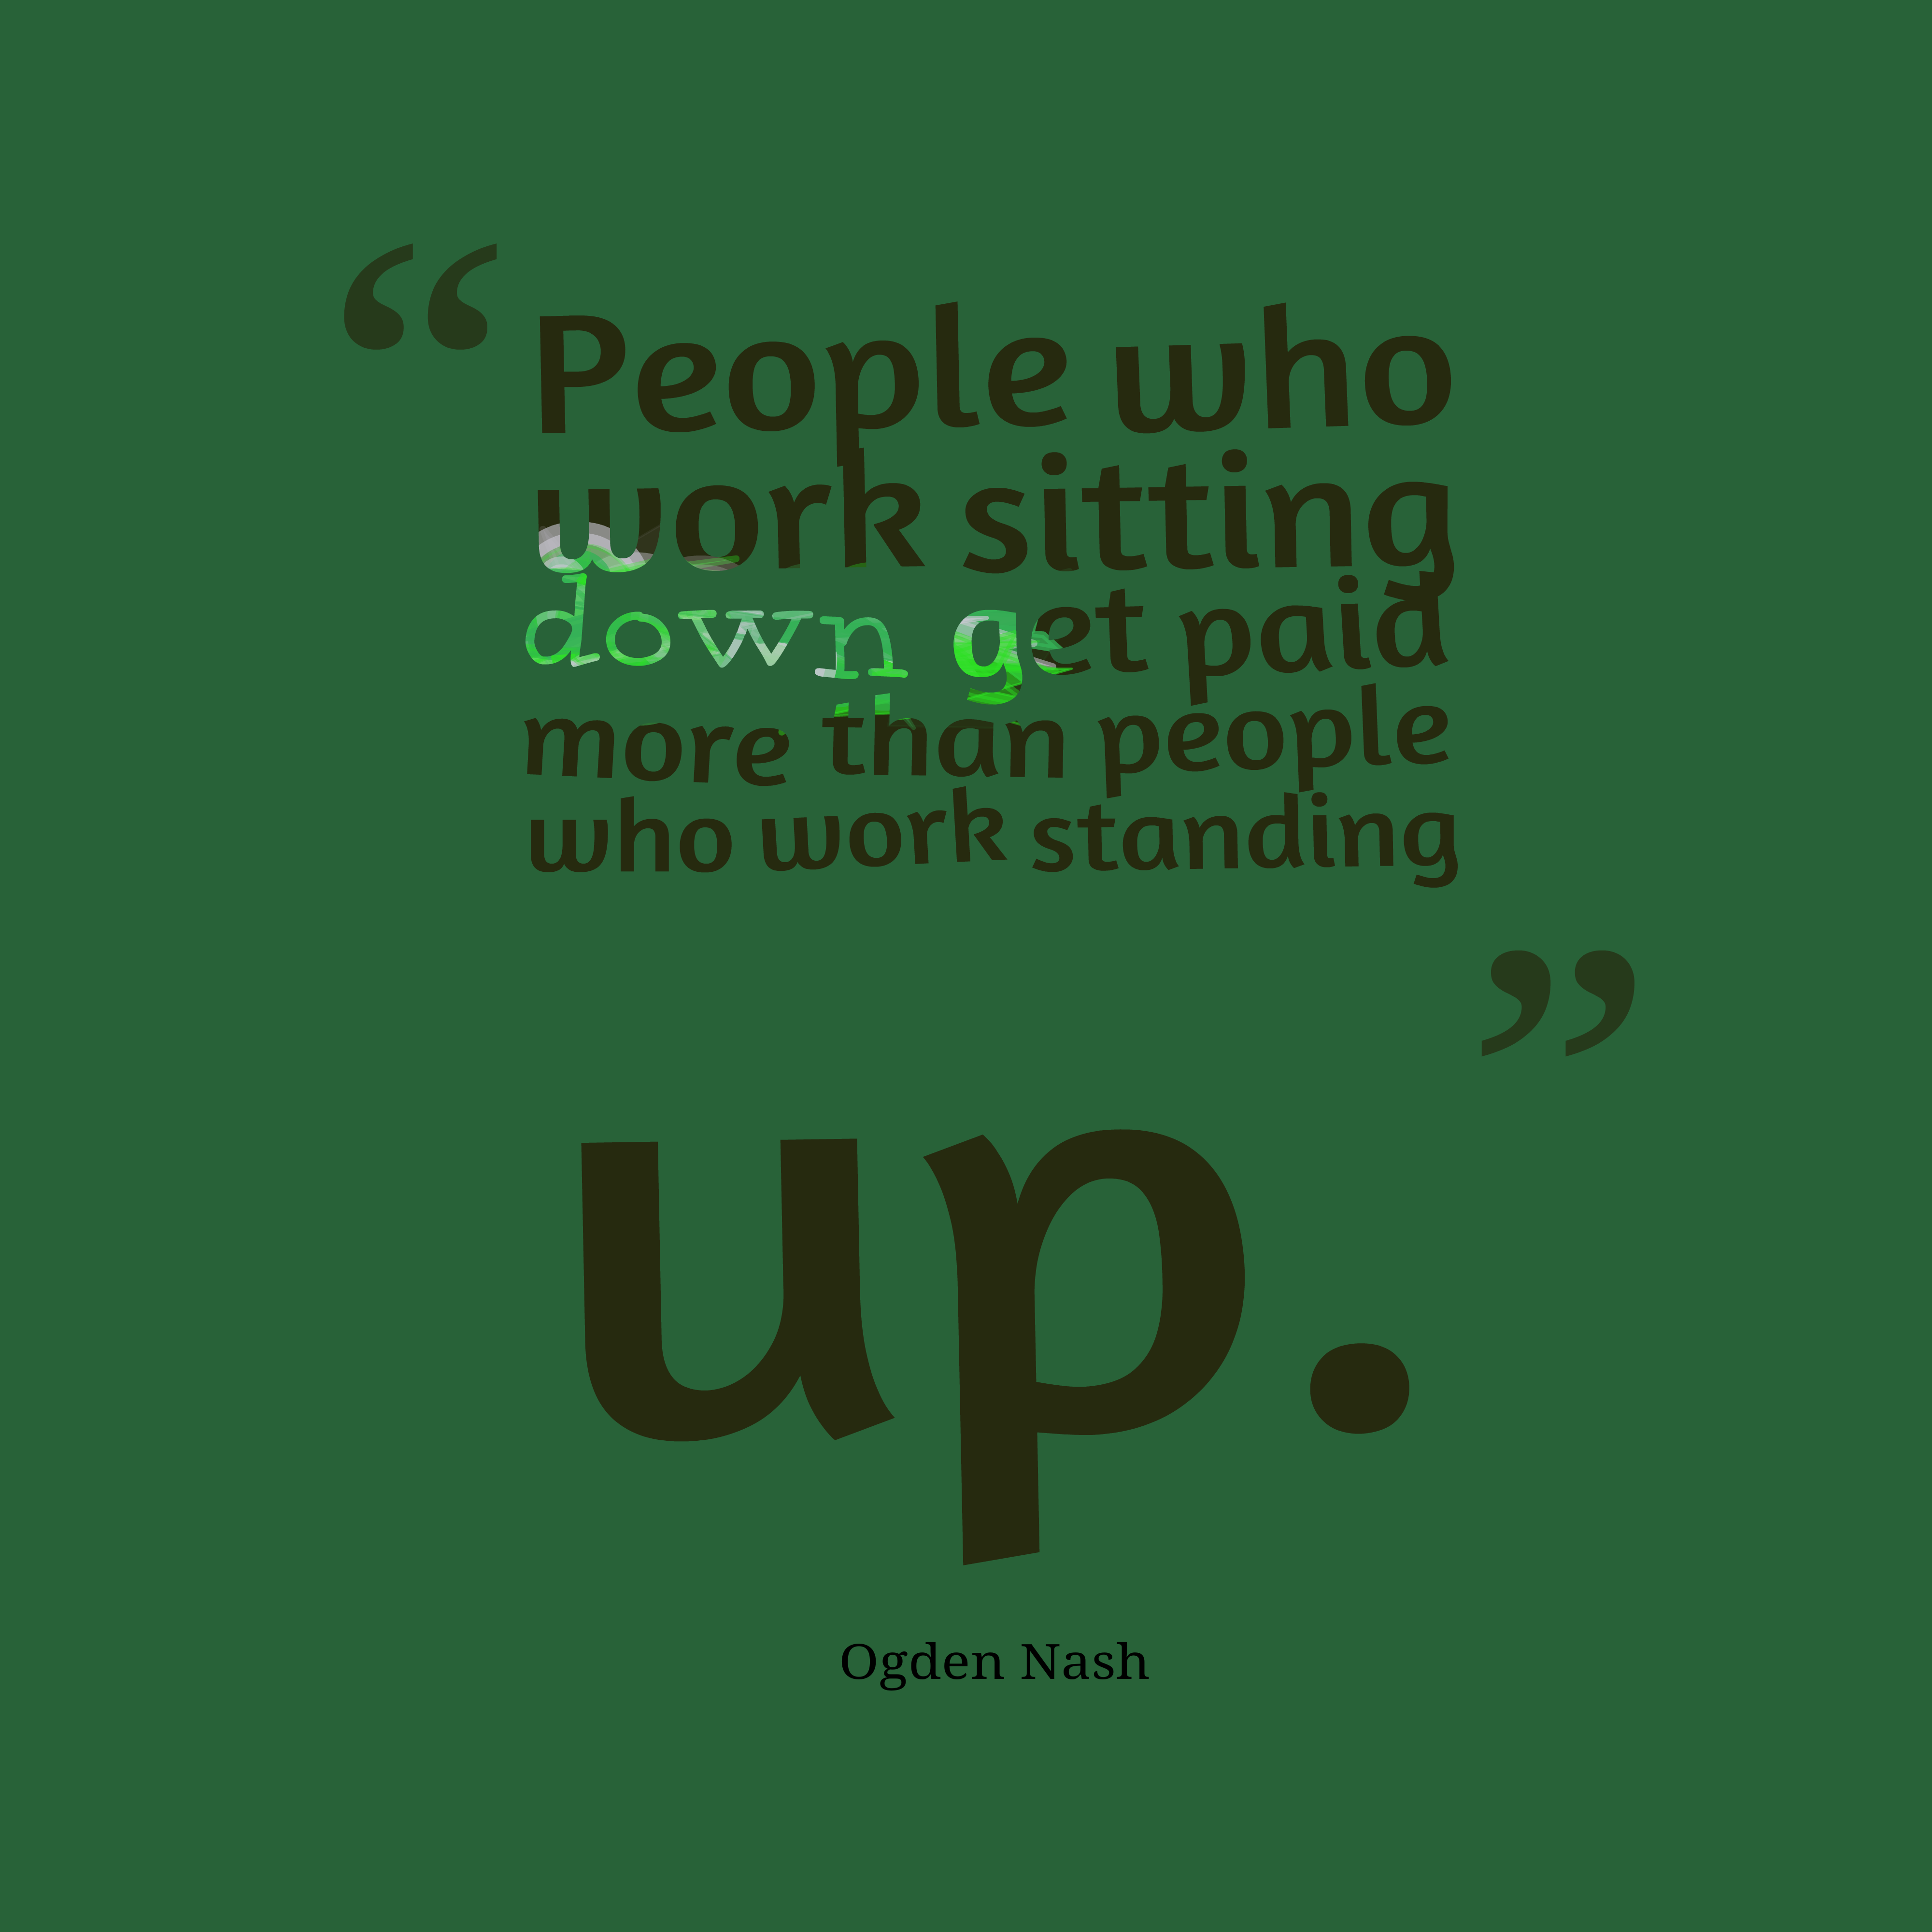 Quotes image of People who work sitting down get paid more than people who work standing up.